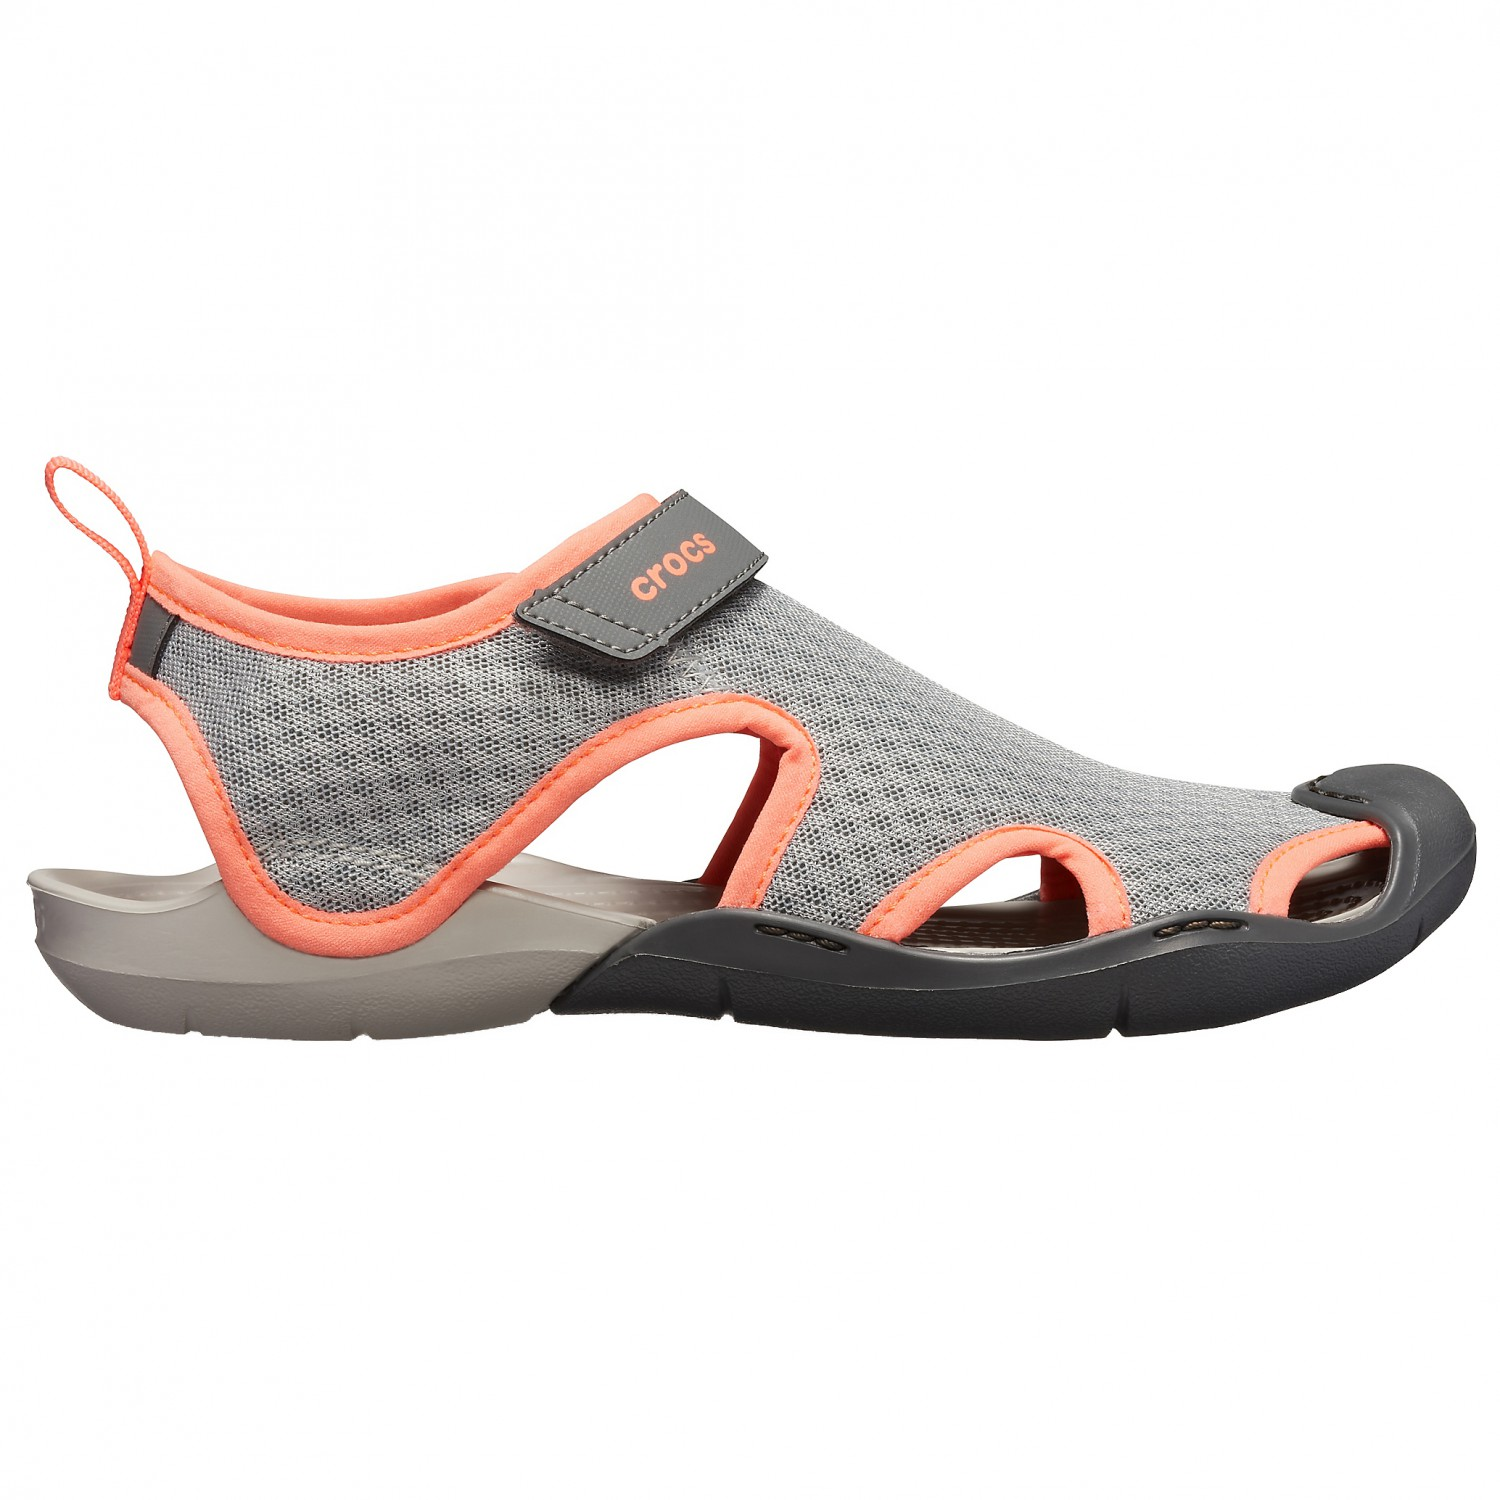 34c335ee884168 Crocs - Women s Swiftwater Mesh Sandal - Outdoor sandals